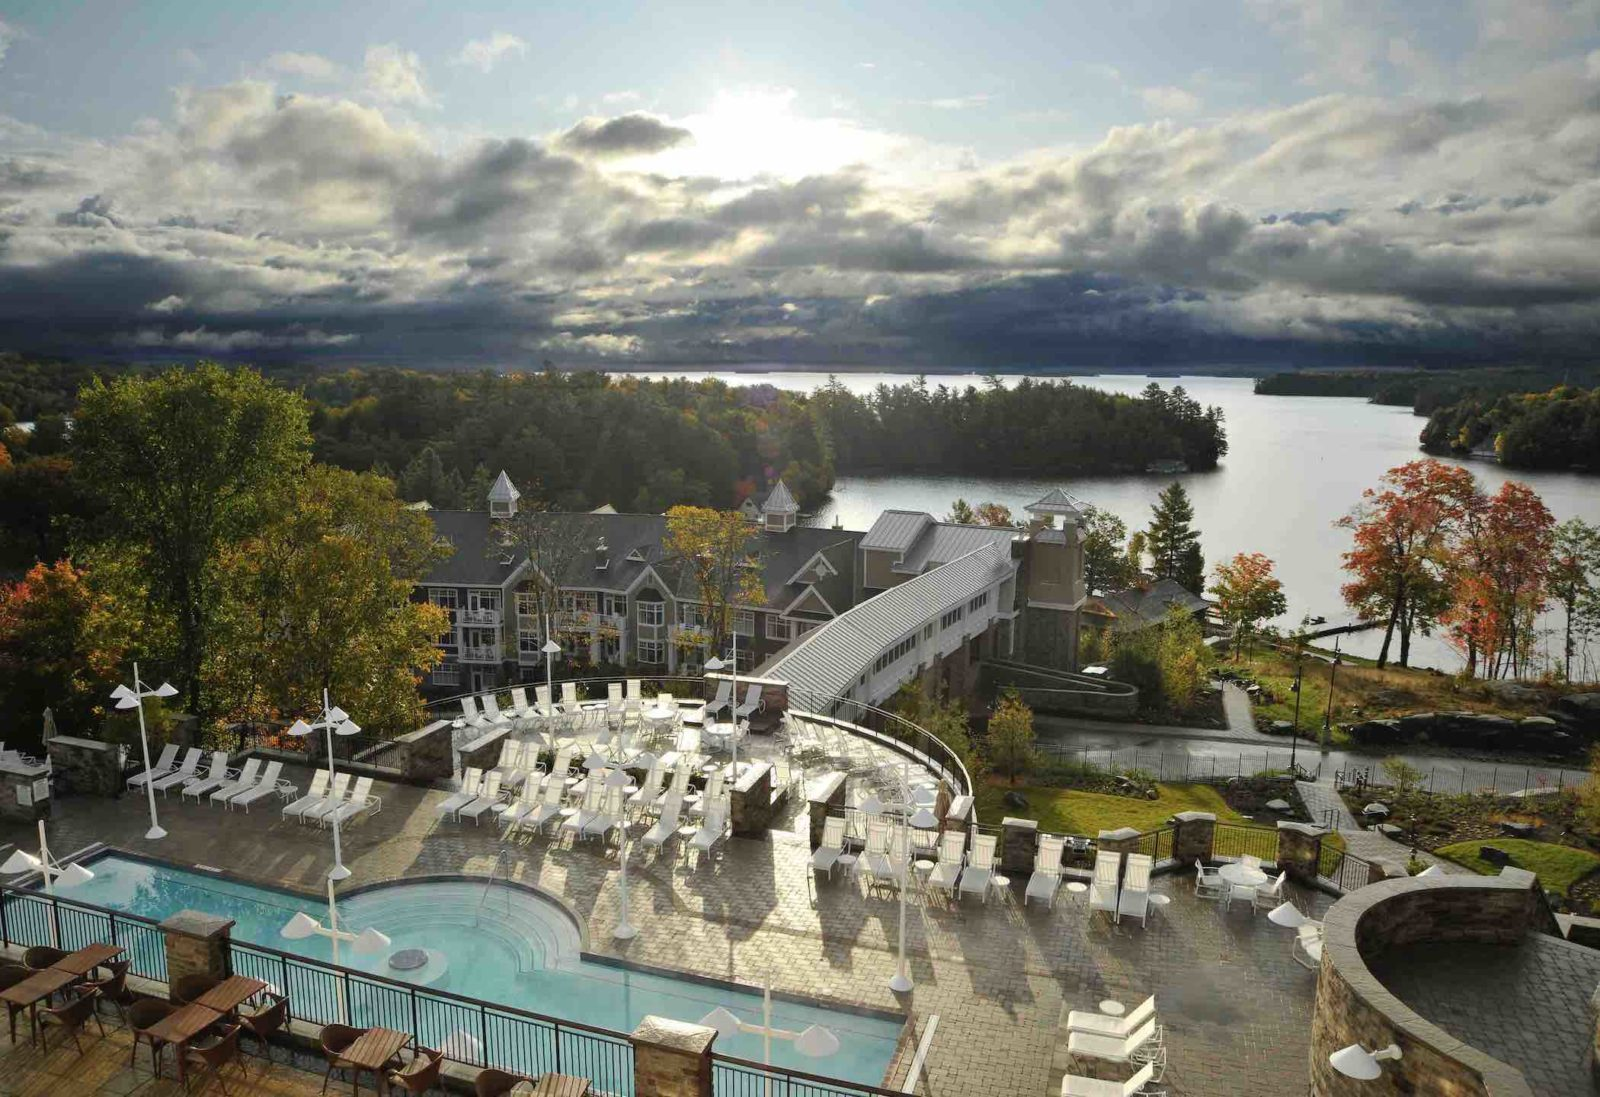 JW Marriott Rosseau Resort aerial view of one of the top Luxury Muskoka resorts